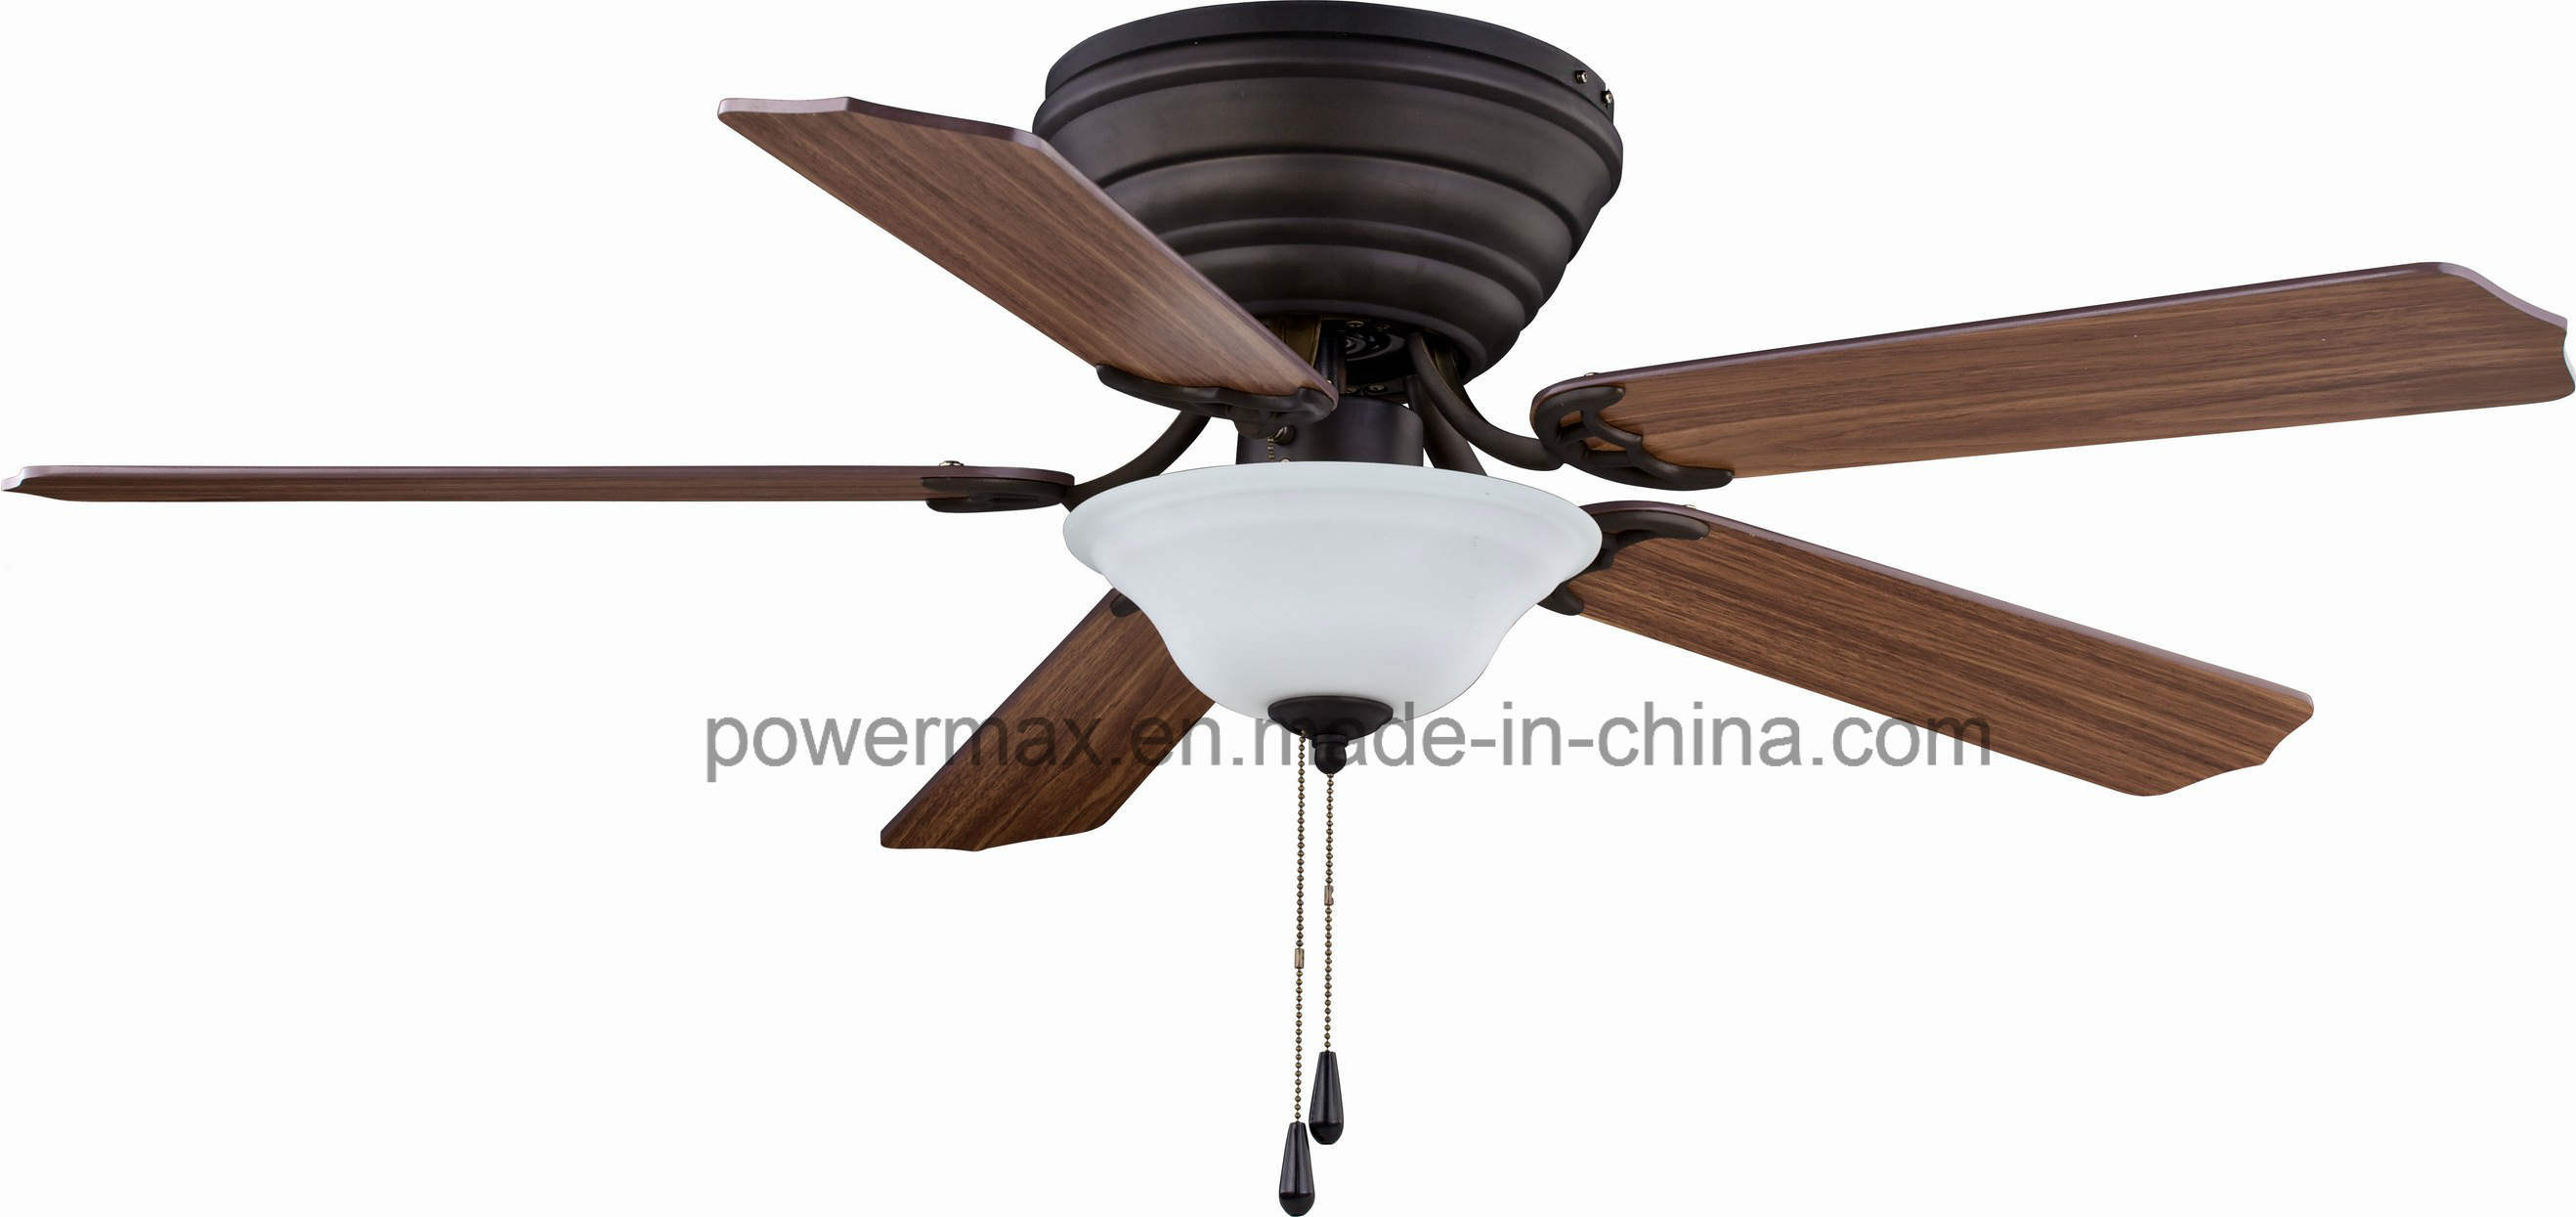 """52"""" Ceiling Fan with Lighting"""